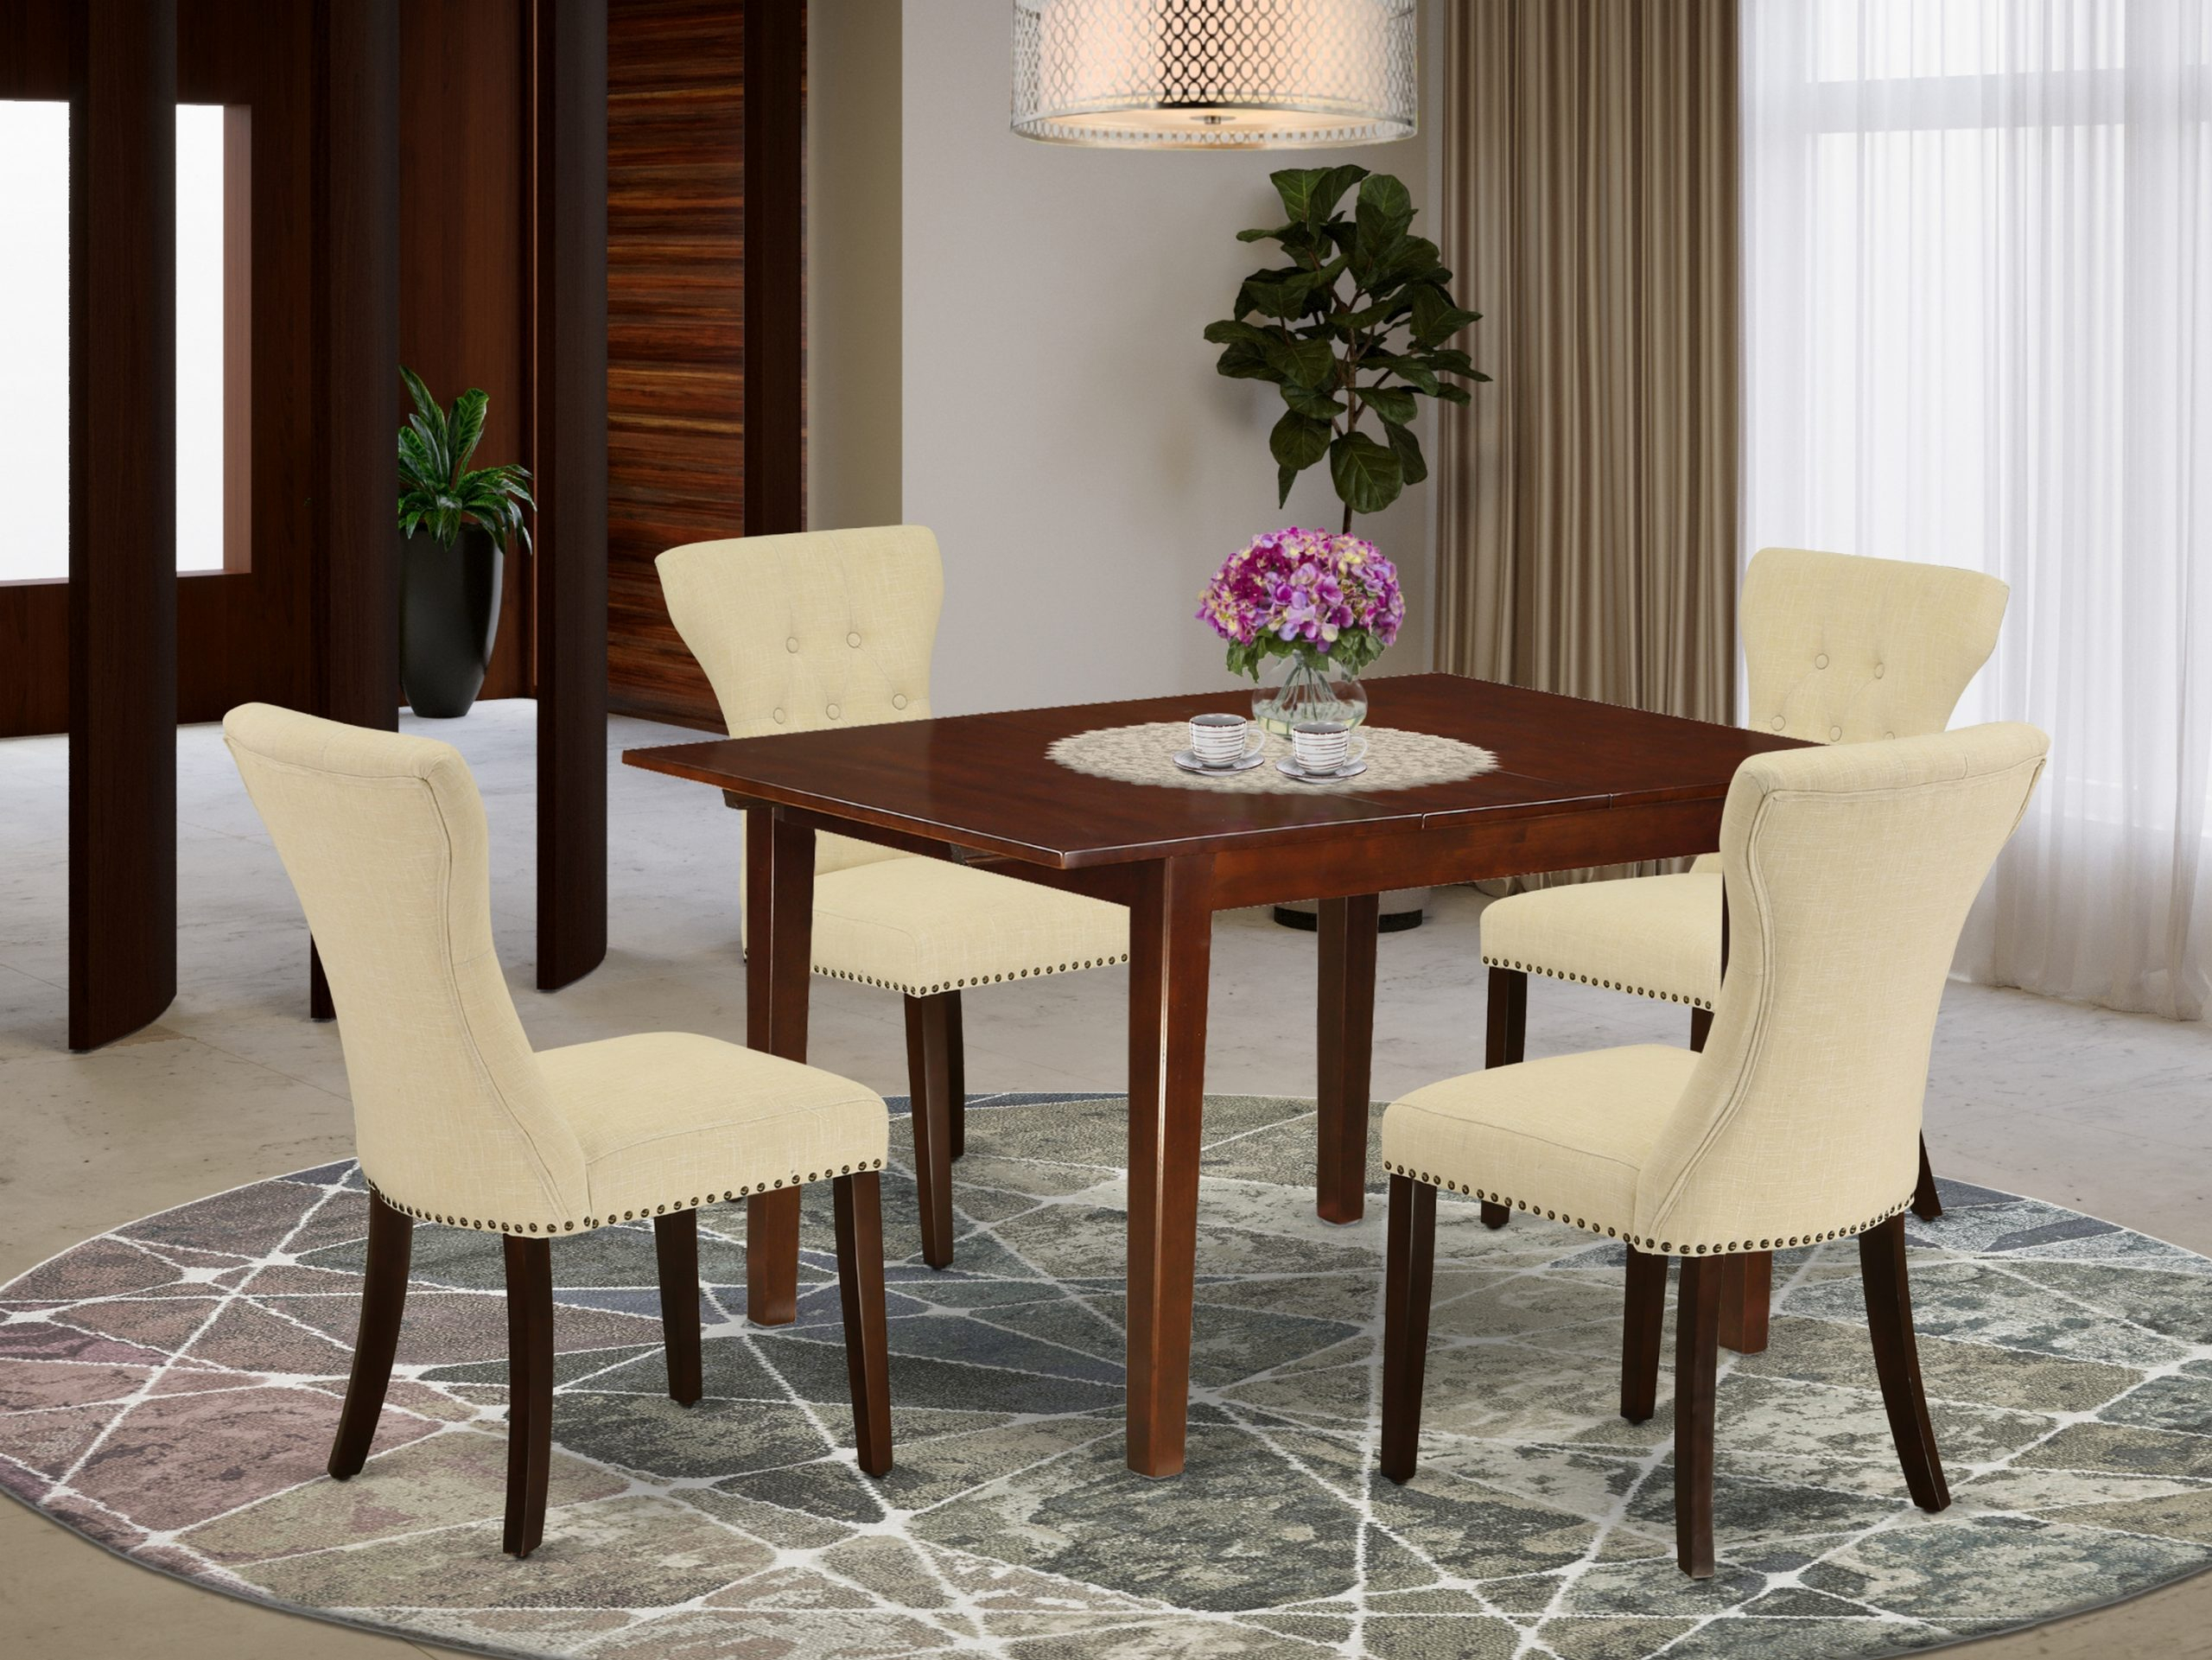 East West Furniture Mlga5 Mah 32 5 Piece Rectangular Intended For Most Up To Date Cainsville 32'' Dining Tables (View 2 of 15)